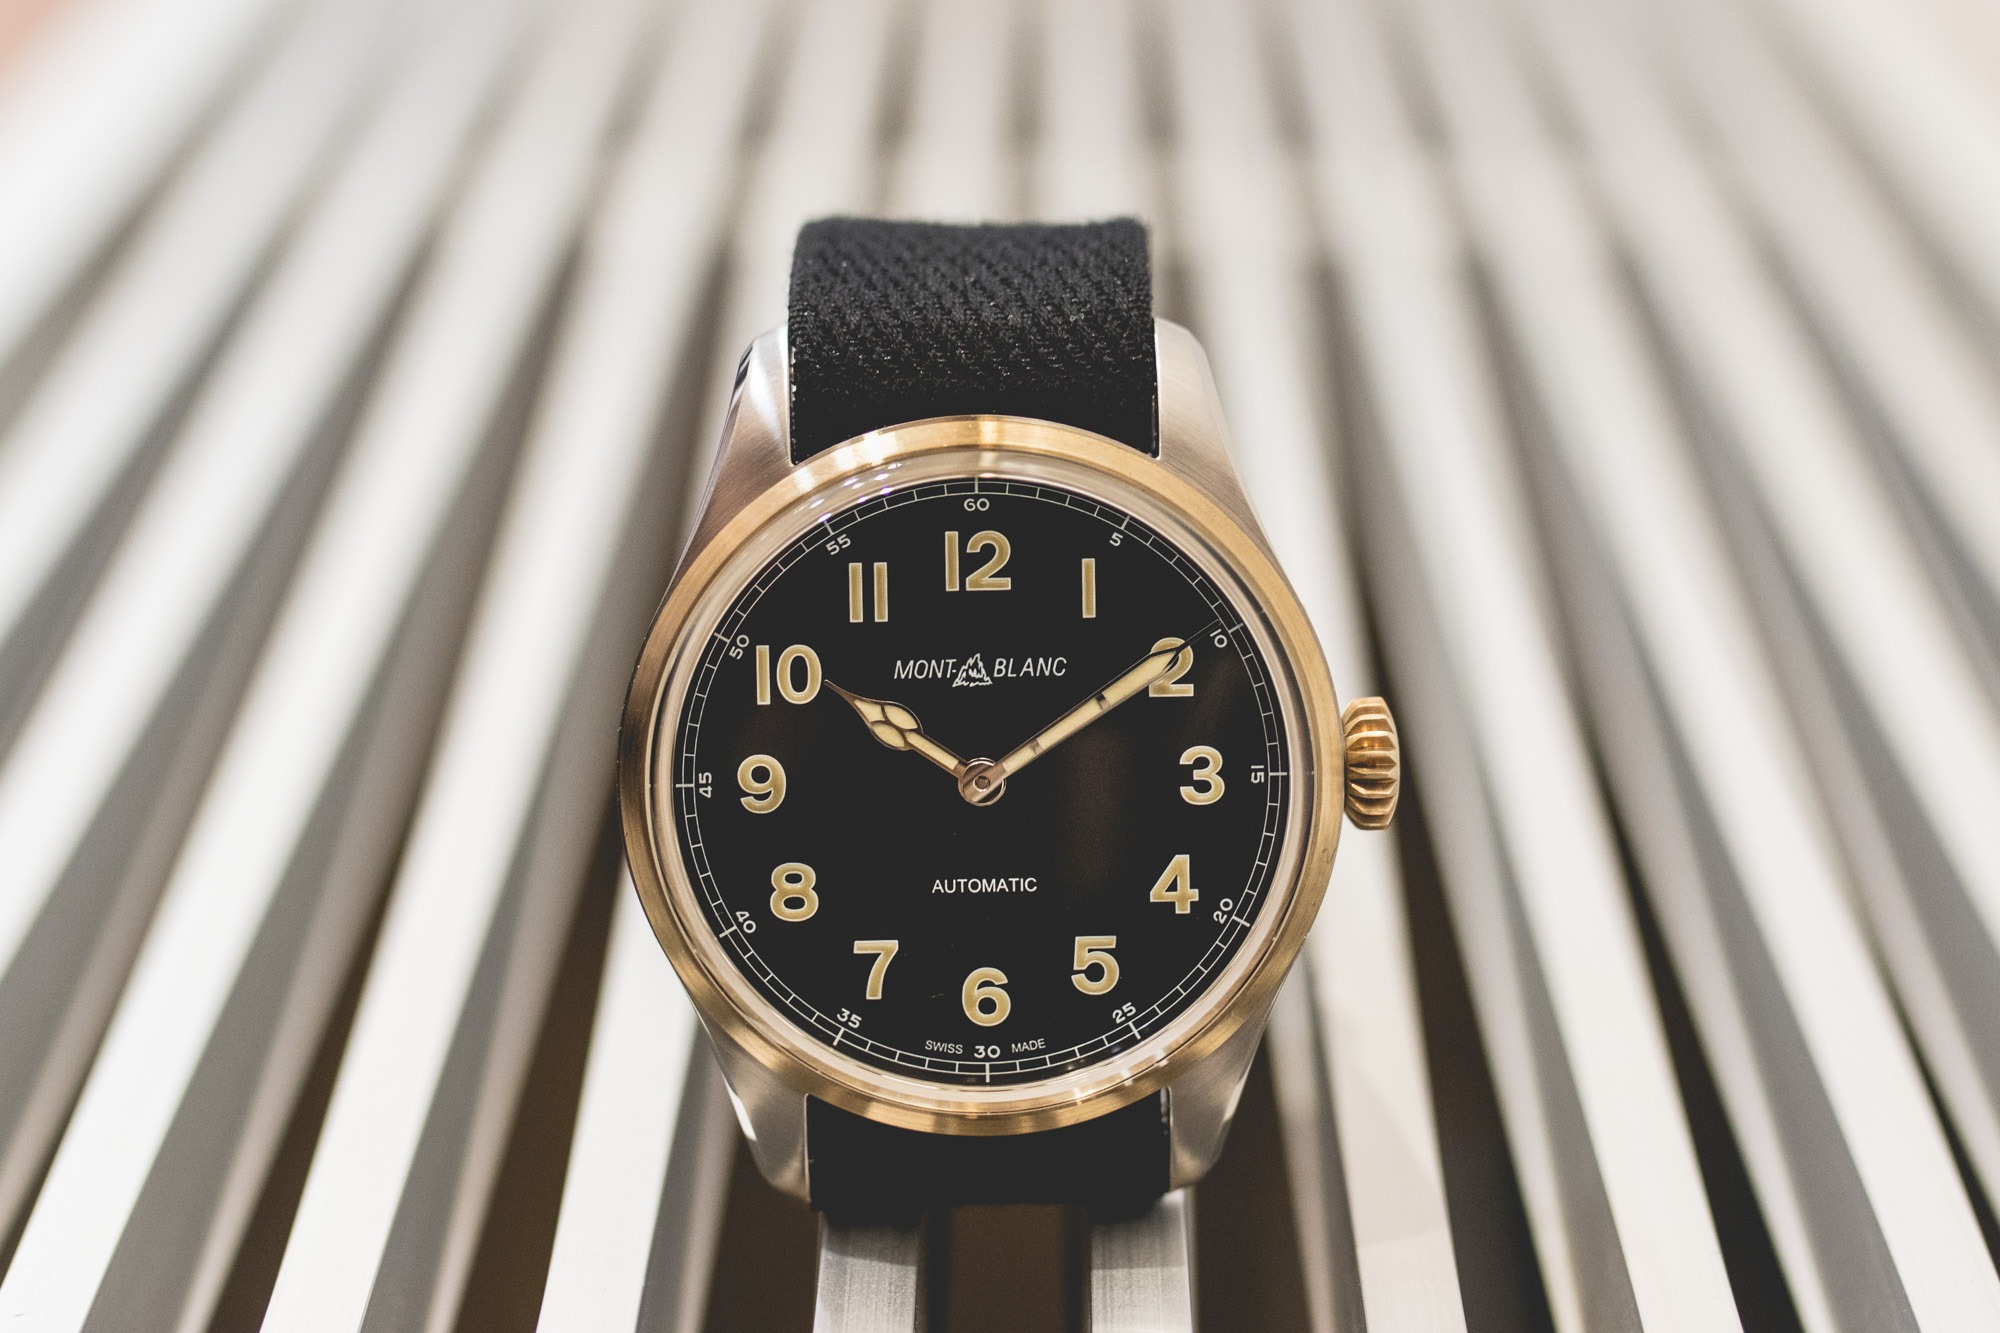 Montblanc SIHH 2018 - 1858 Automatic